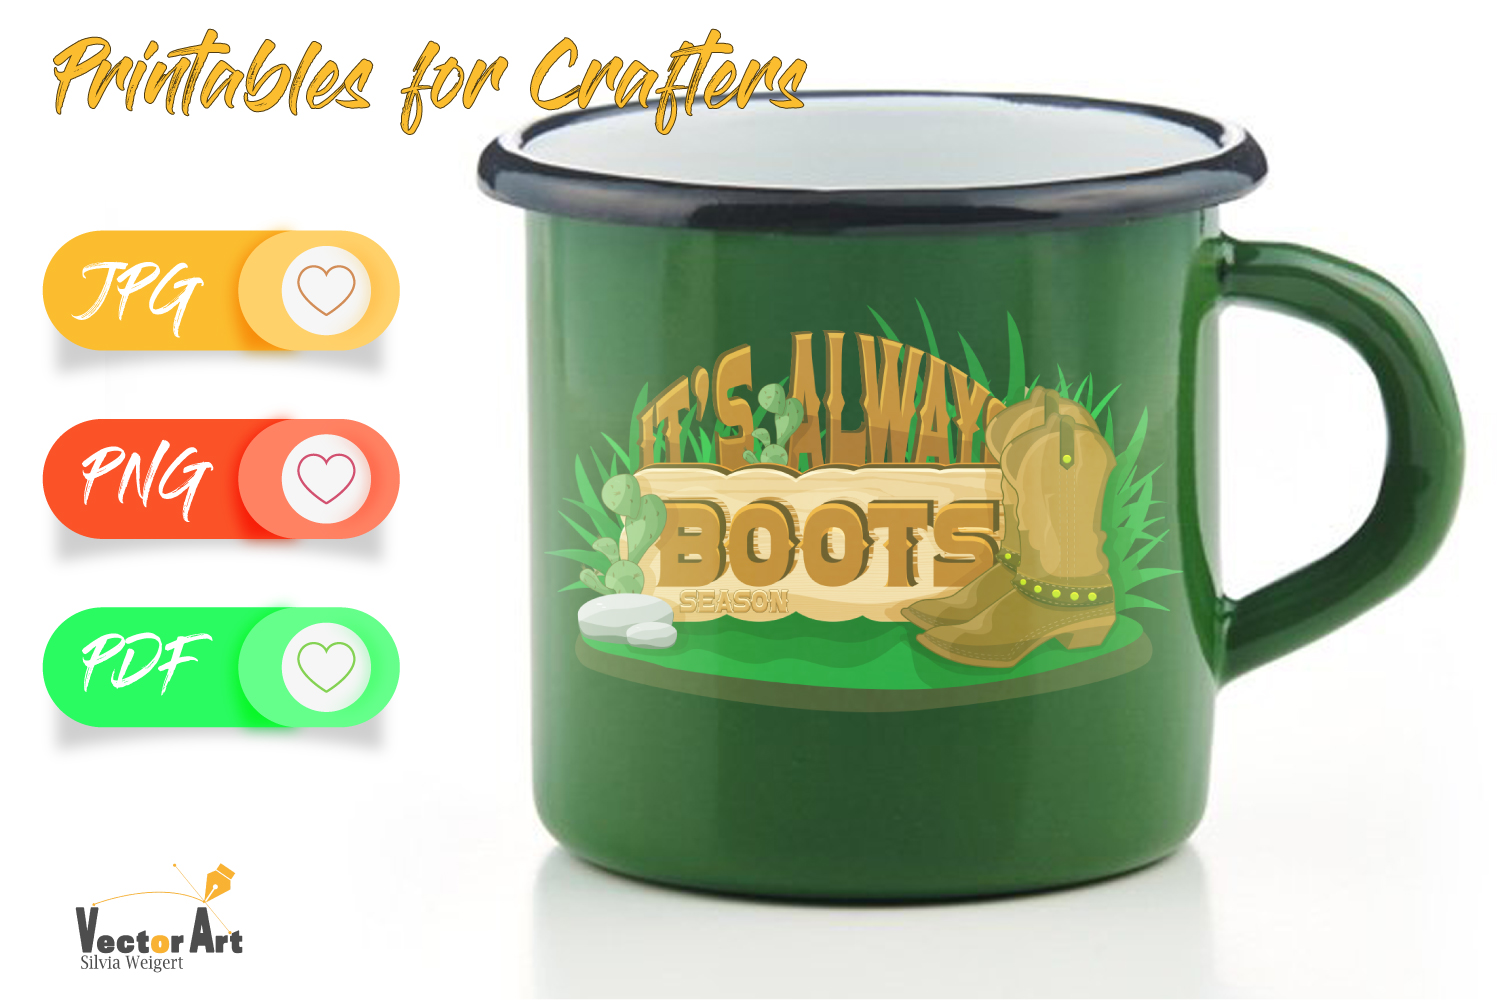 It's always boot season - Printables for Crafters example image 3